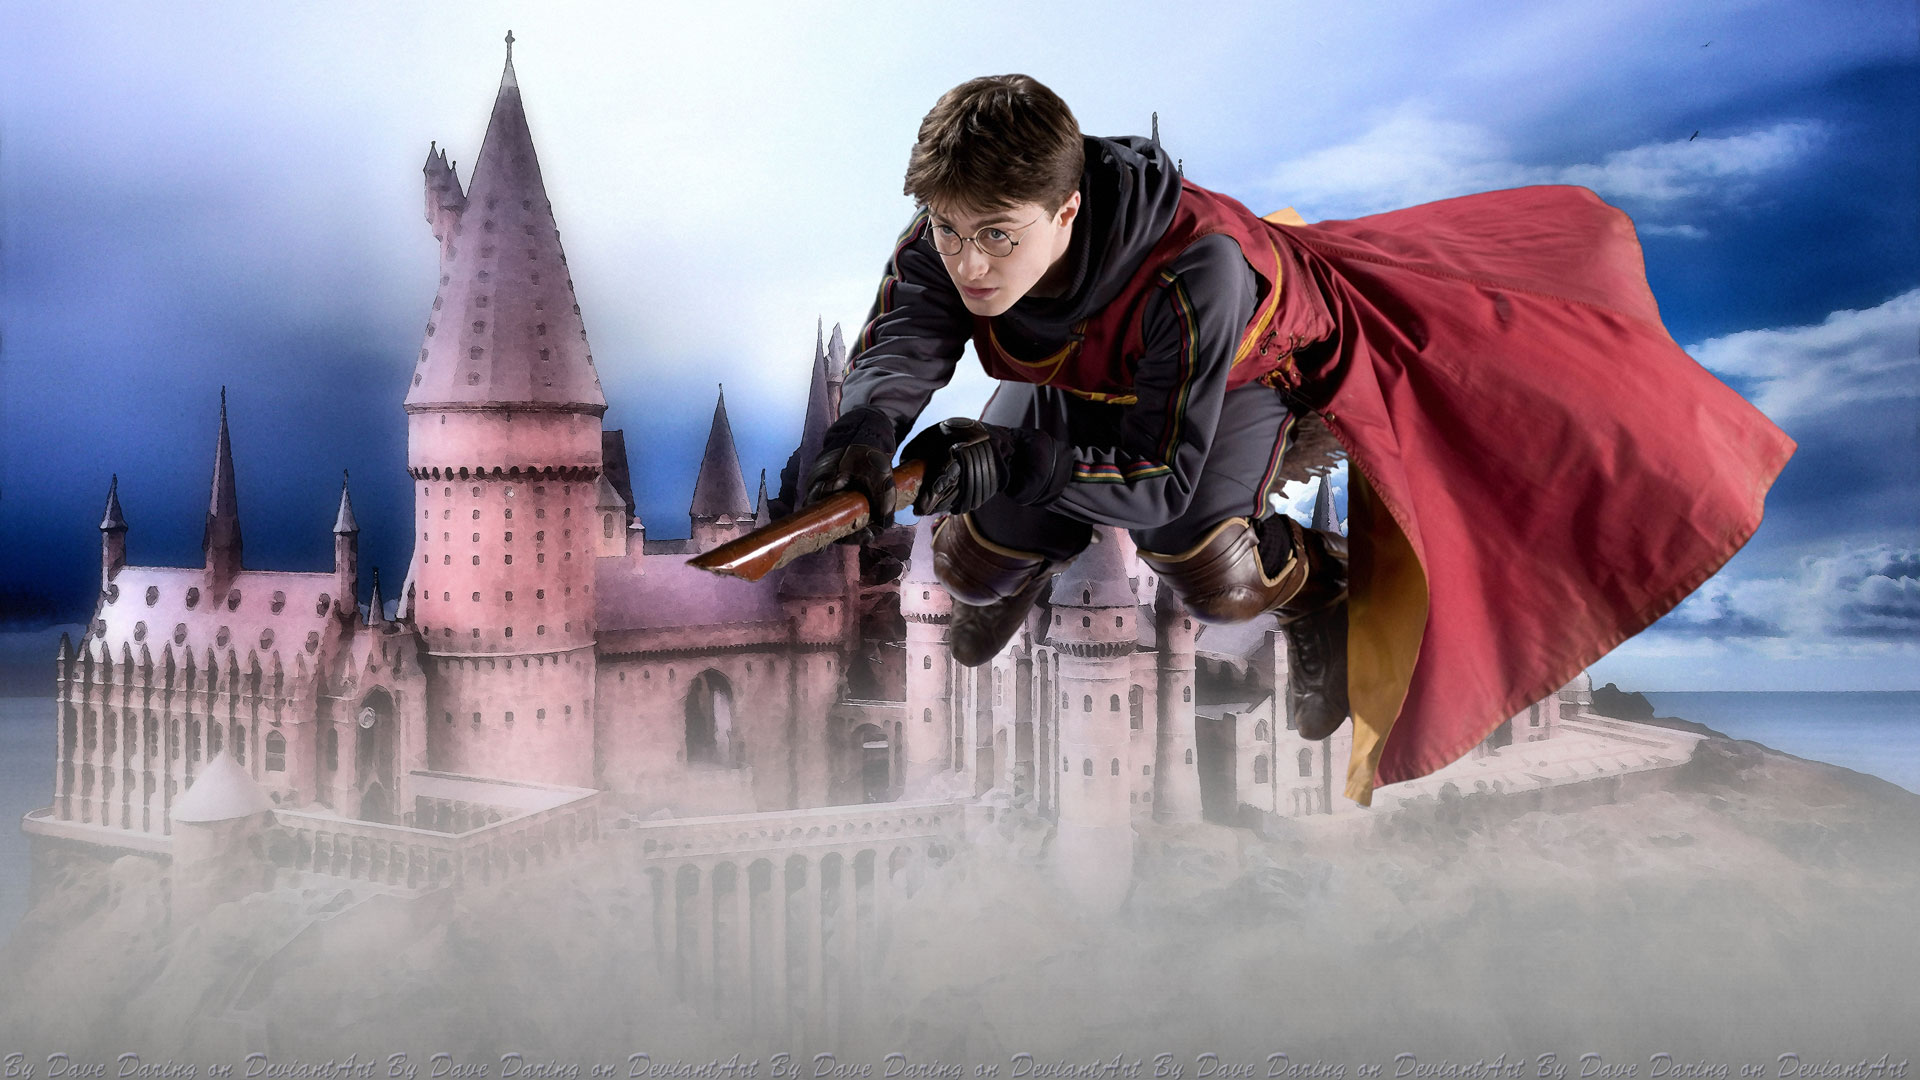 Harry Potter Amazing HD Wallpapers (High Resolution) - All ...